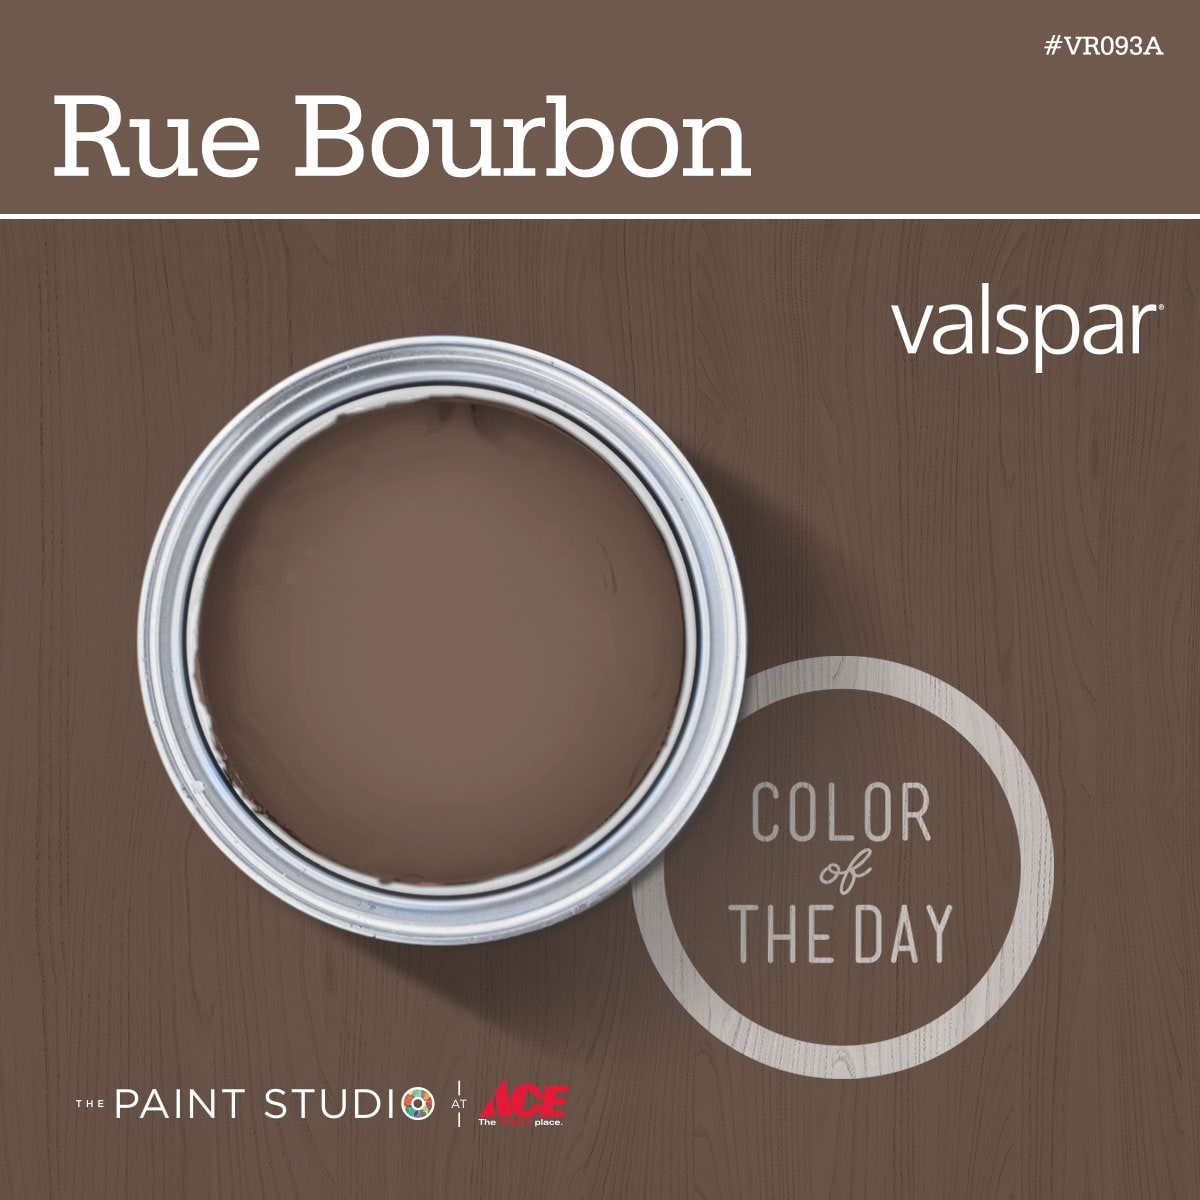 I chose Rue Bourbon (link to http://m.valsparpaint.com/color-detail.php?id=70460&g=70013)—a rich brown that coordinated with the sofa in my living room and complemented the green walls adjacent to the planter.